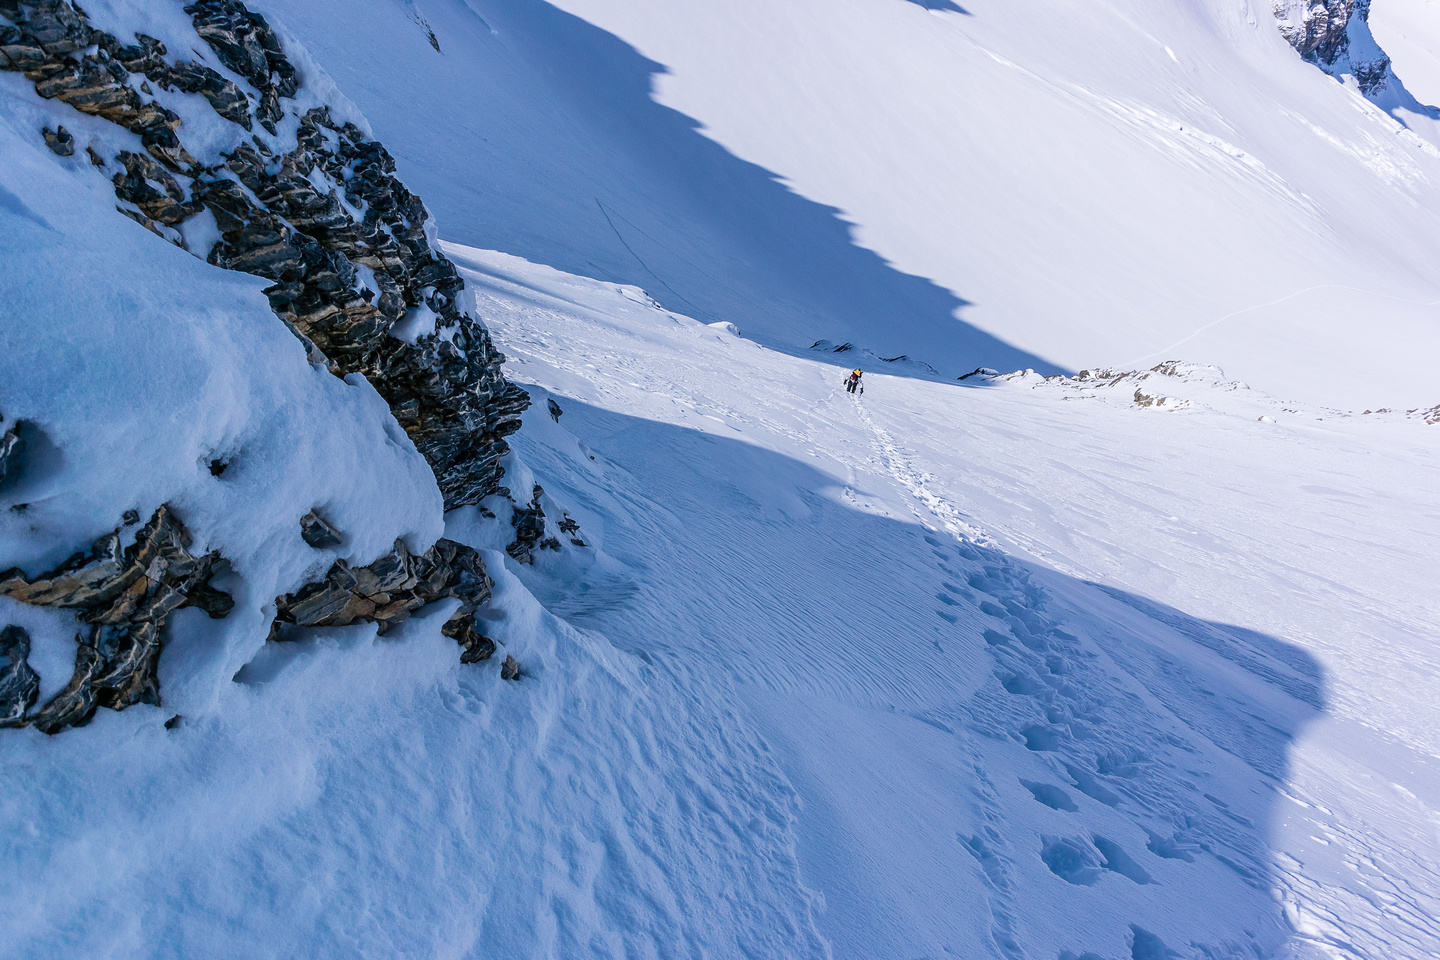 Looking back down at Ferenc after ditching the 'shoes and rocketing straight up the steep snow slope.